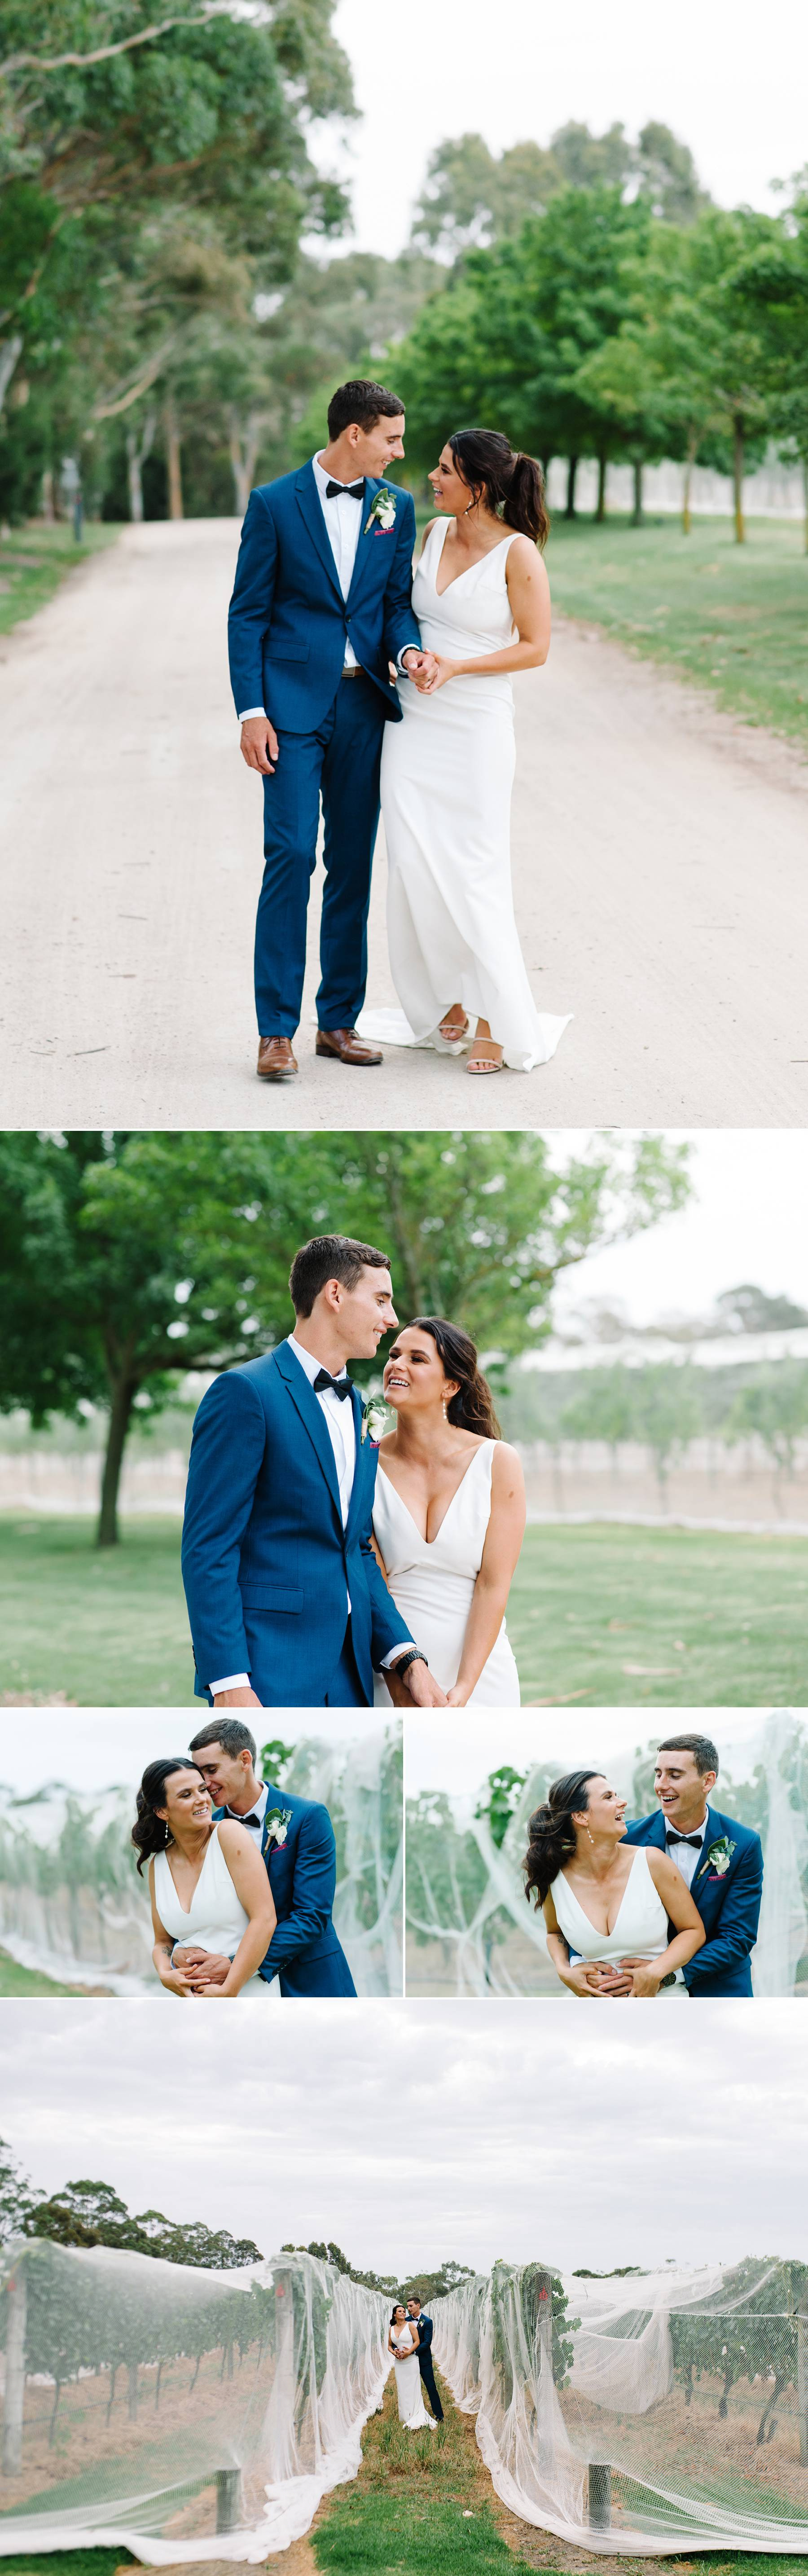 Melbourne winery wedding photography by Michelle Pragt